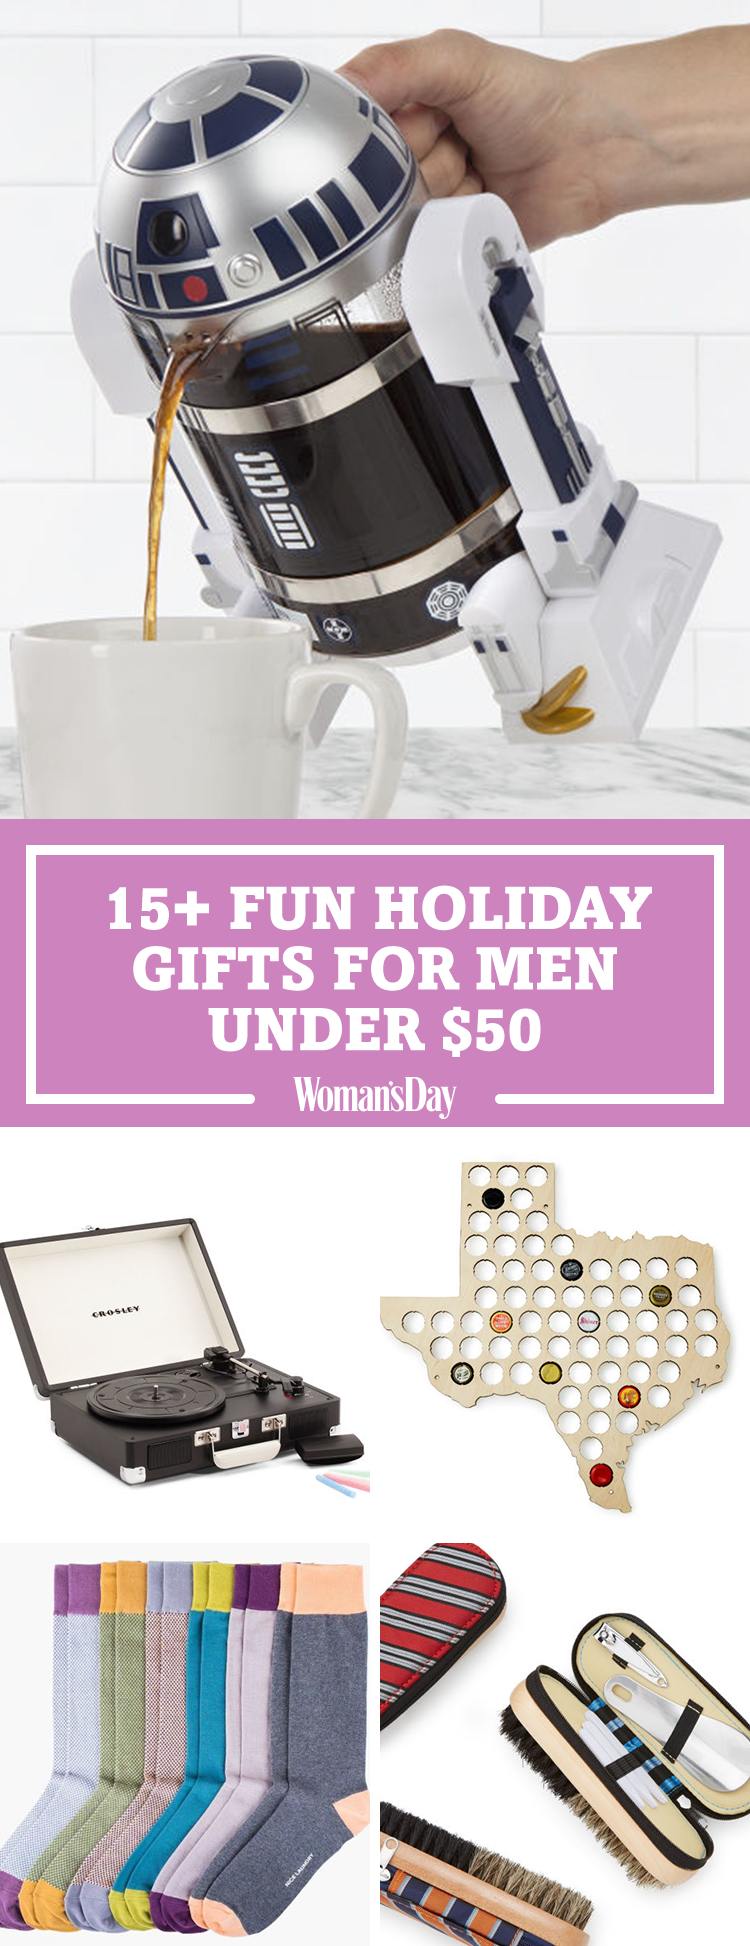 20 Best Christmas Gifts For Men Great Gift Ideas Guys Who Have Everything